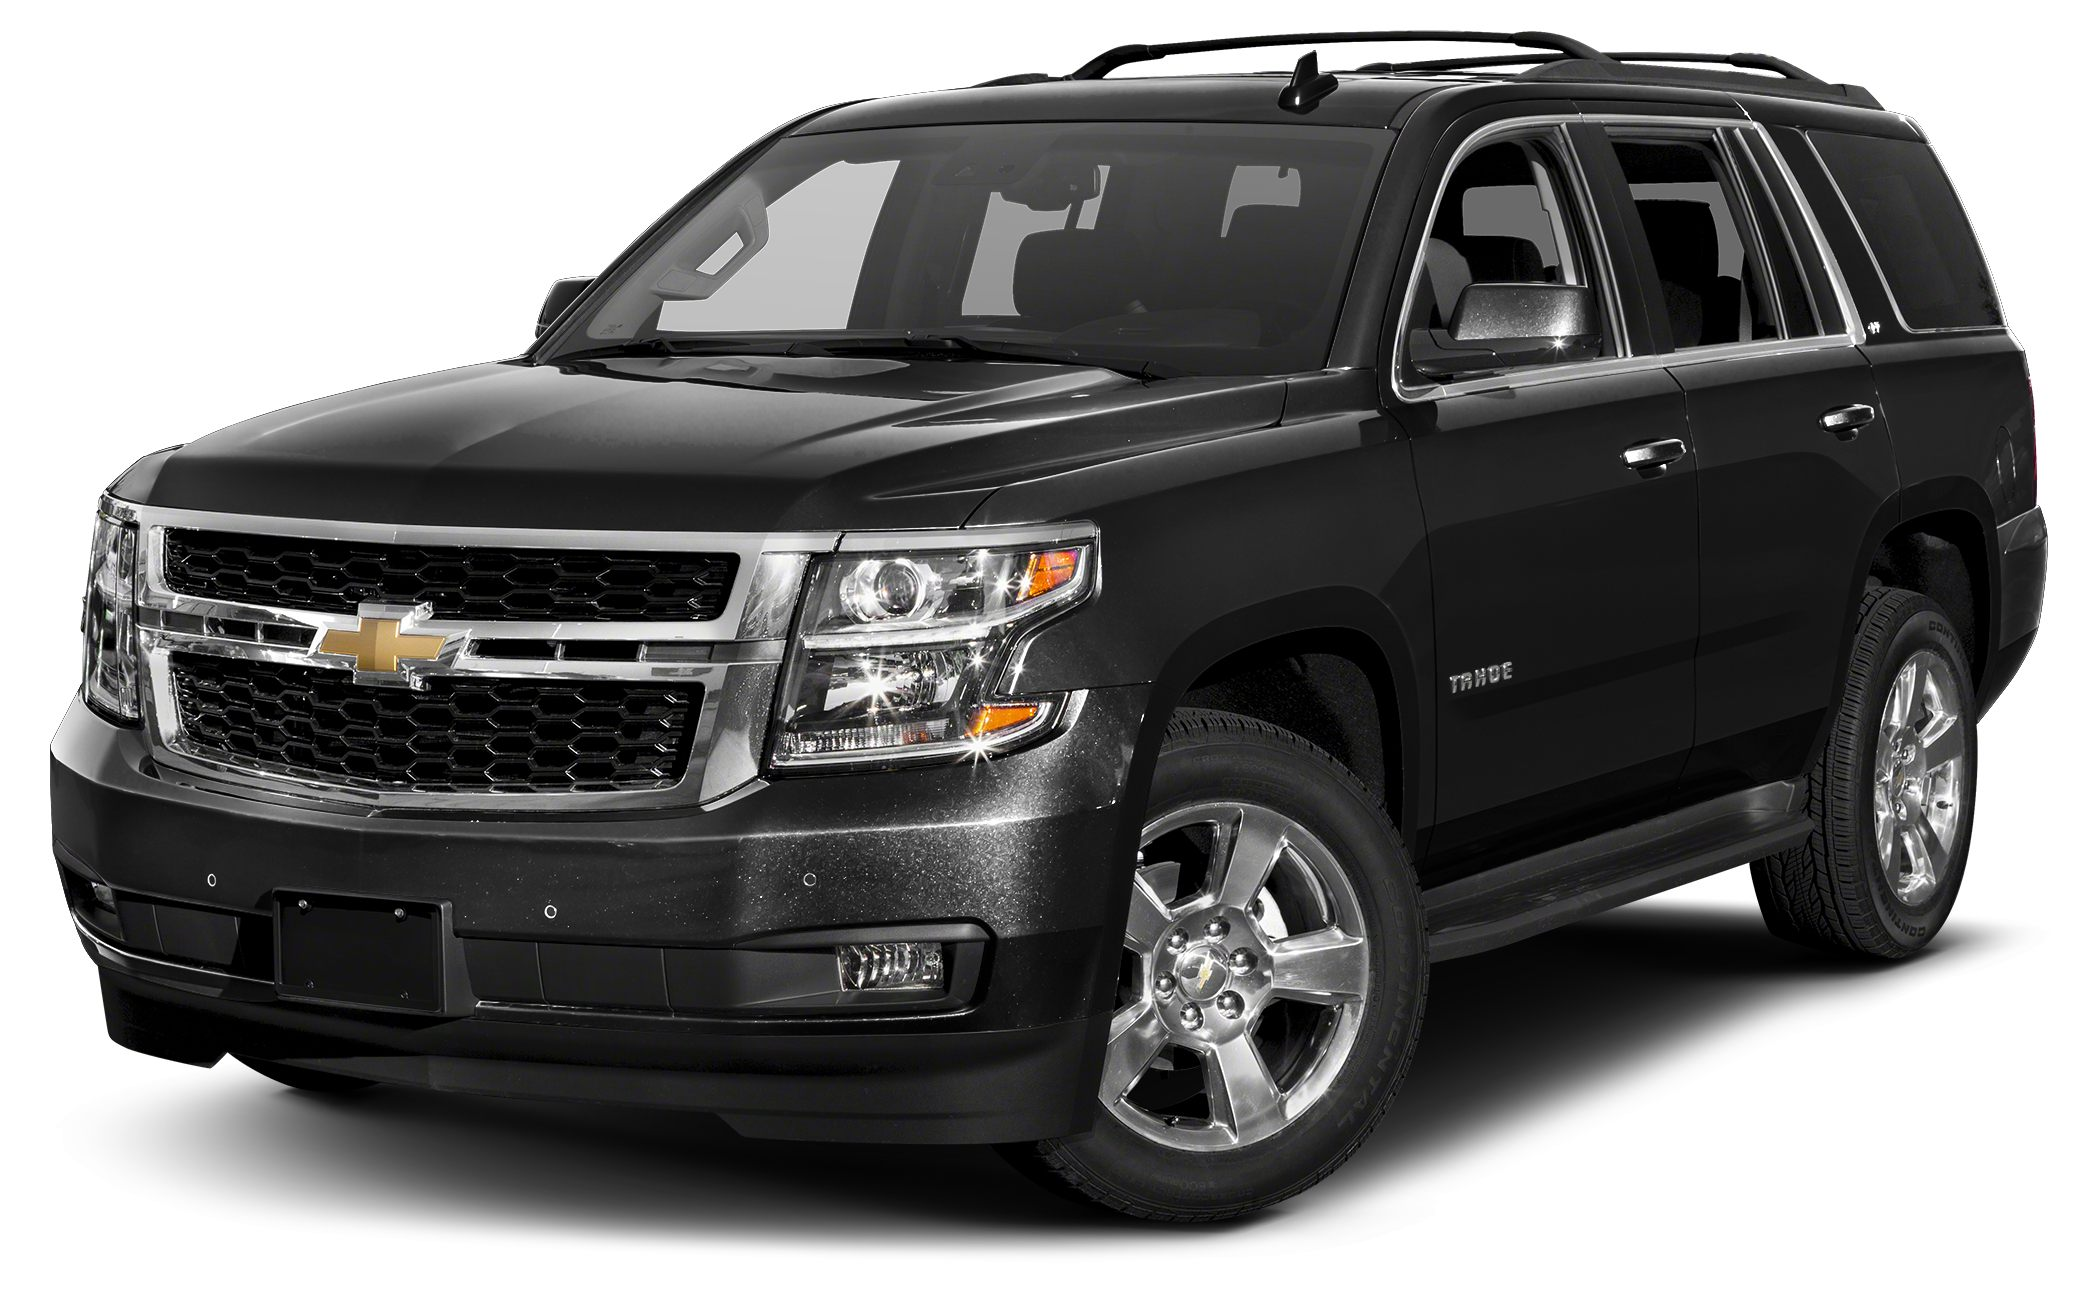 2015 Chevrolet Tahoe LT Excellent Condition CARFAX 1-Owner JUST REPRICED FROM 43900 4900 be